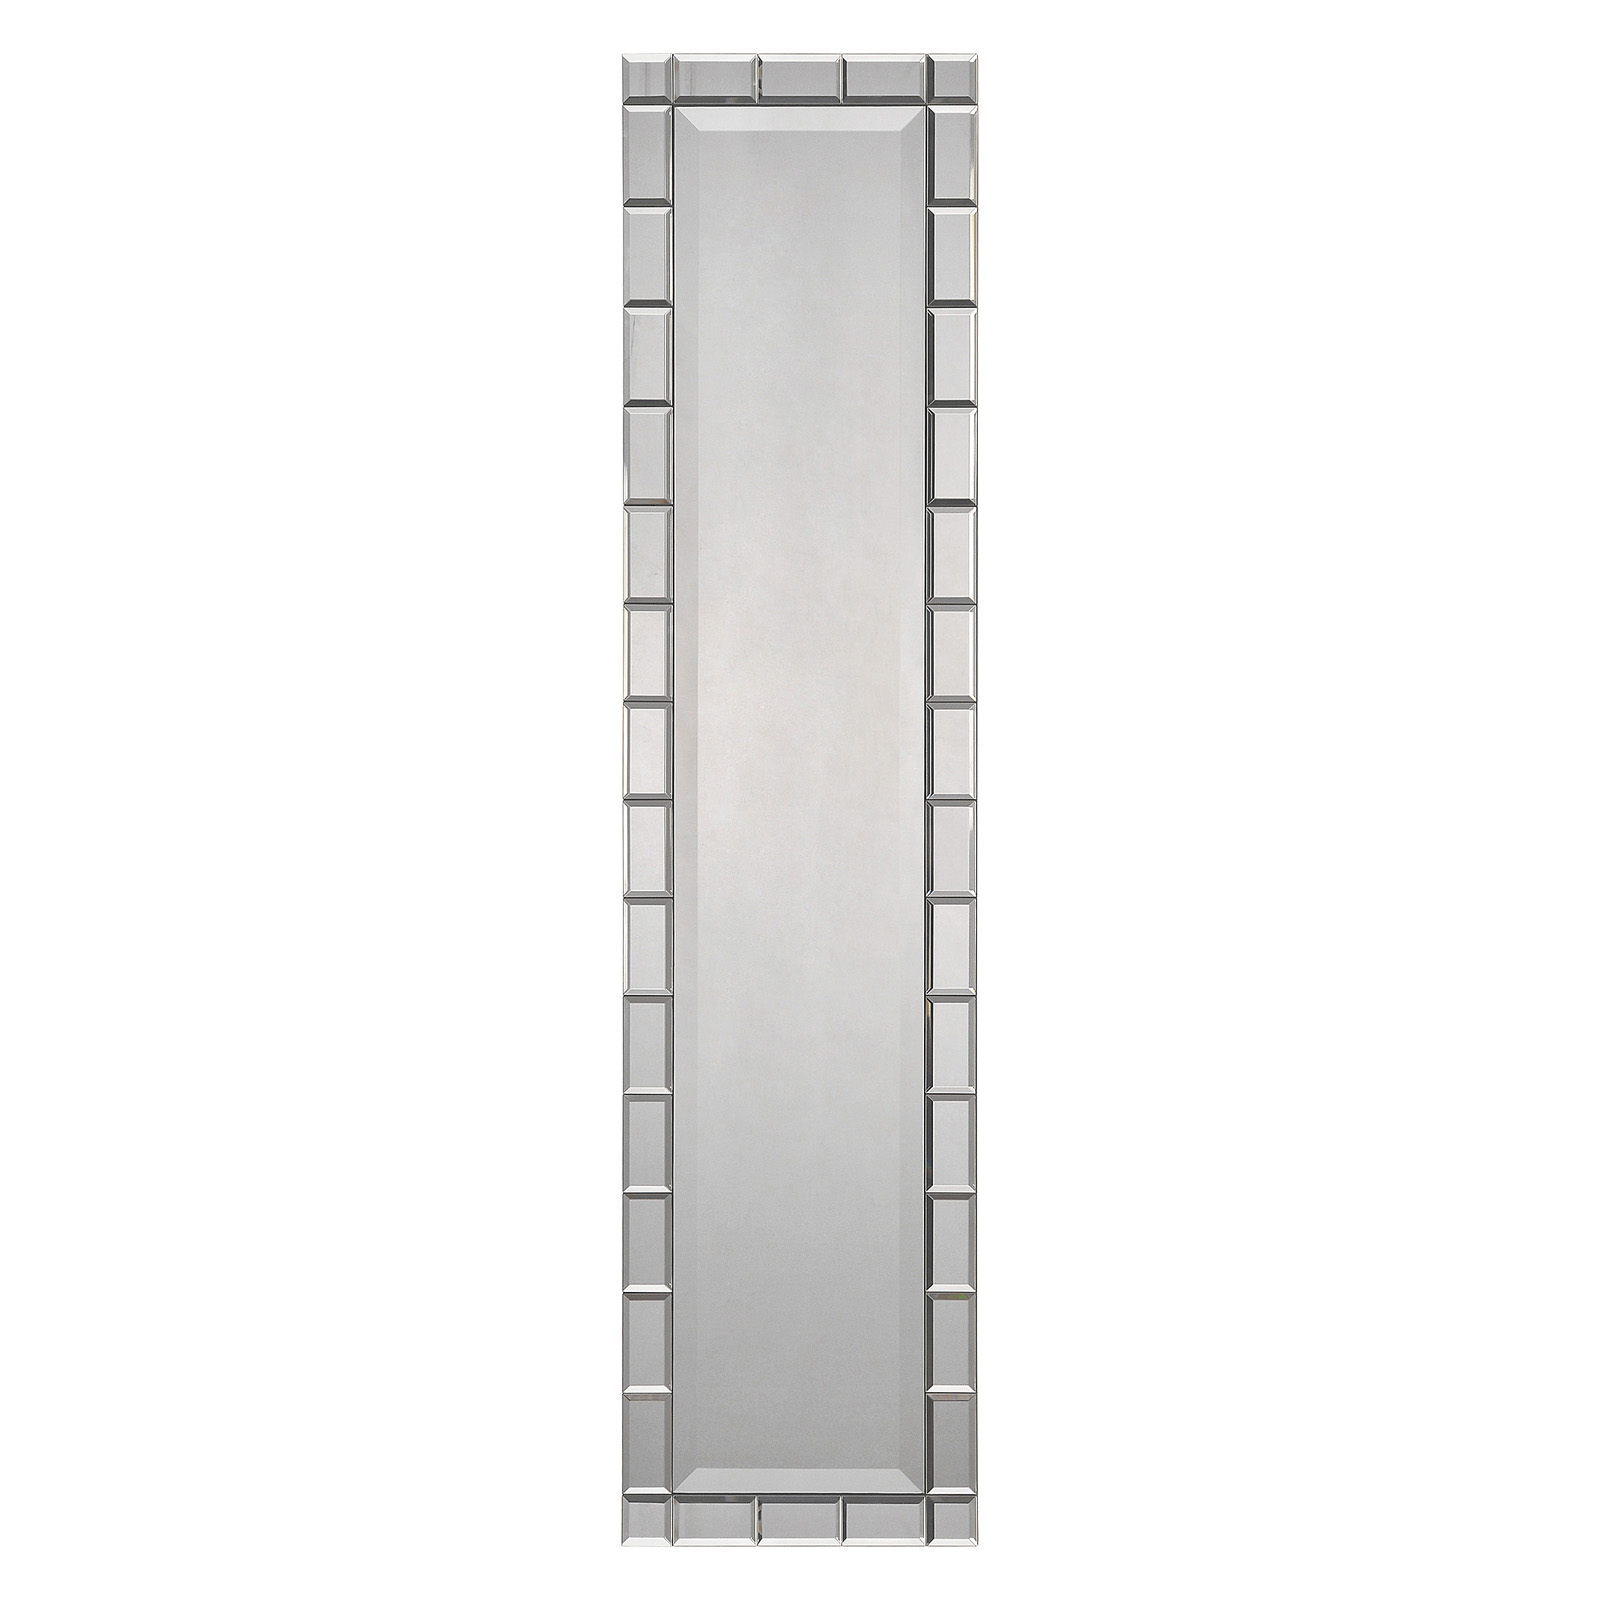 Ren wil tall narrow full length wall mirror 14w x 60h in for Narrow mirror